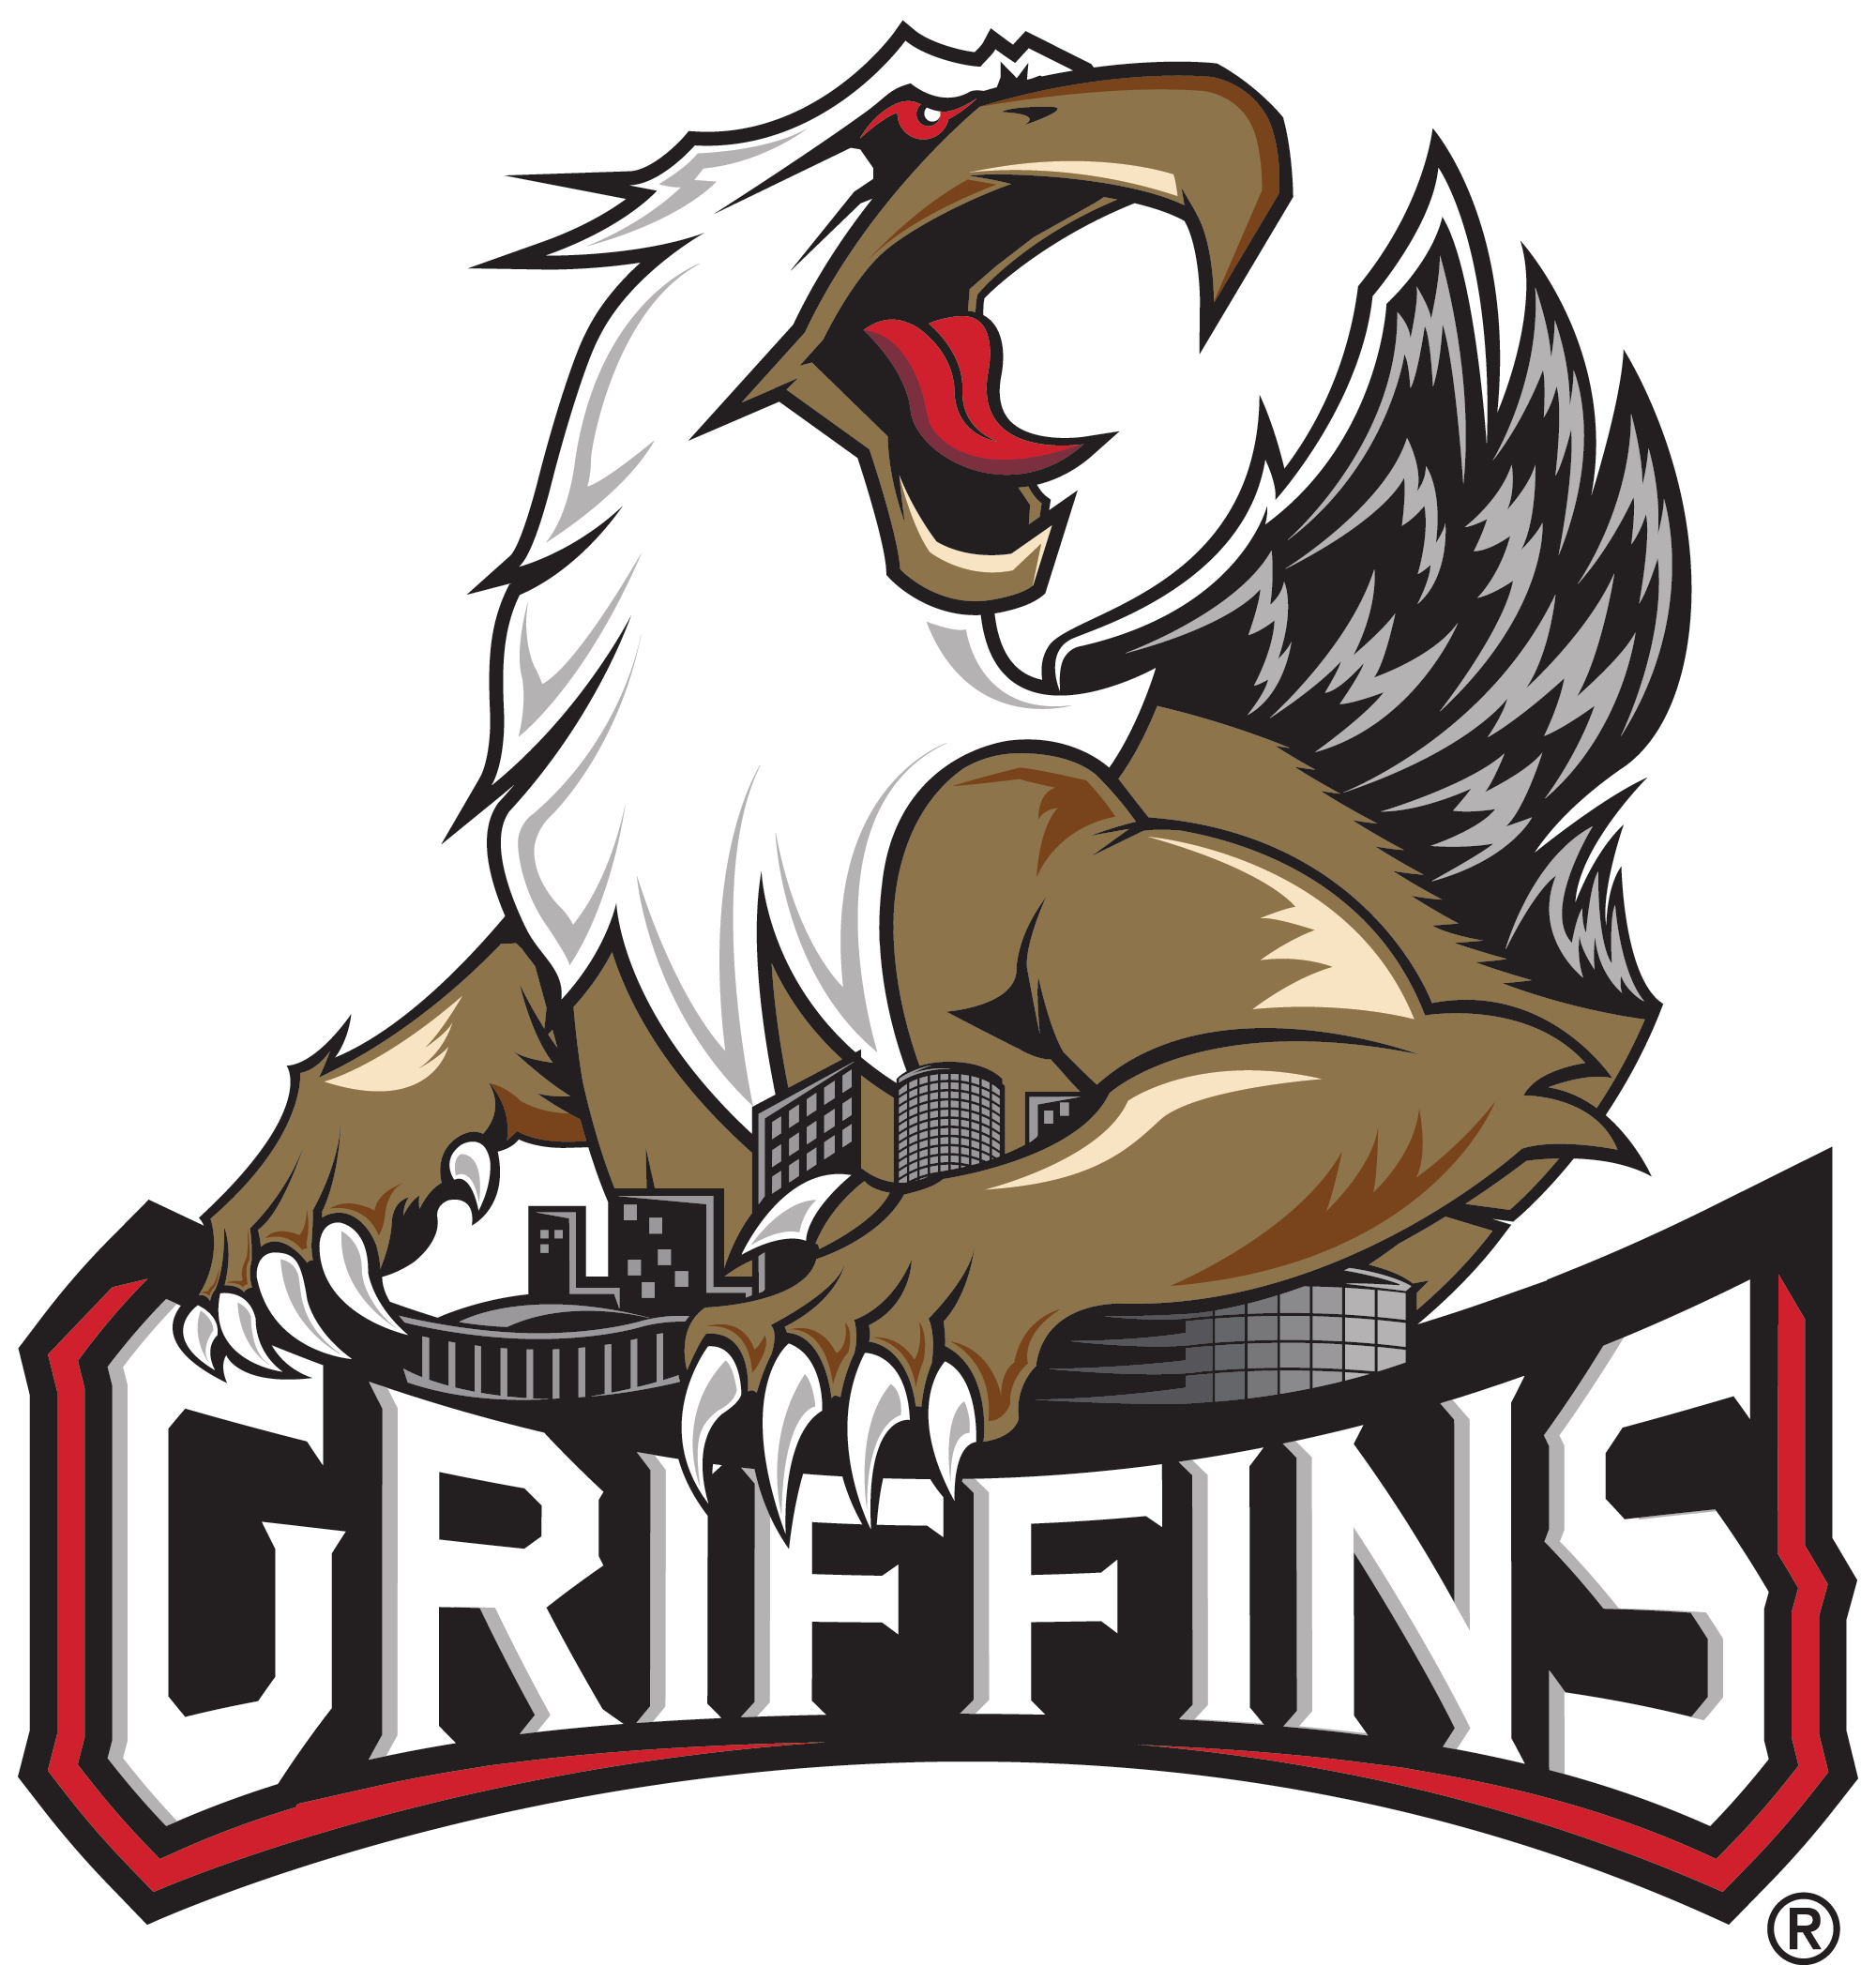 Hockey clipart penalty box. Grand rapids griffins home